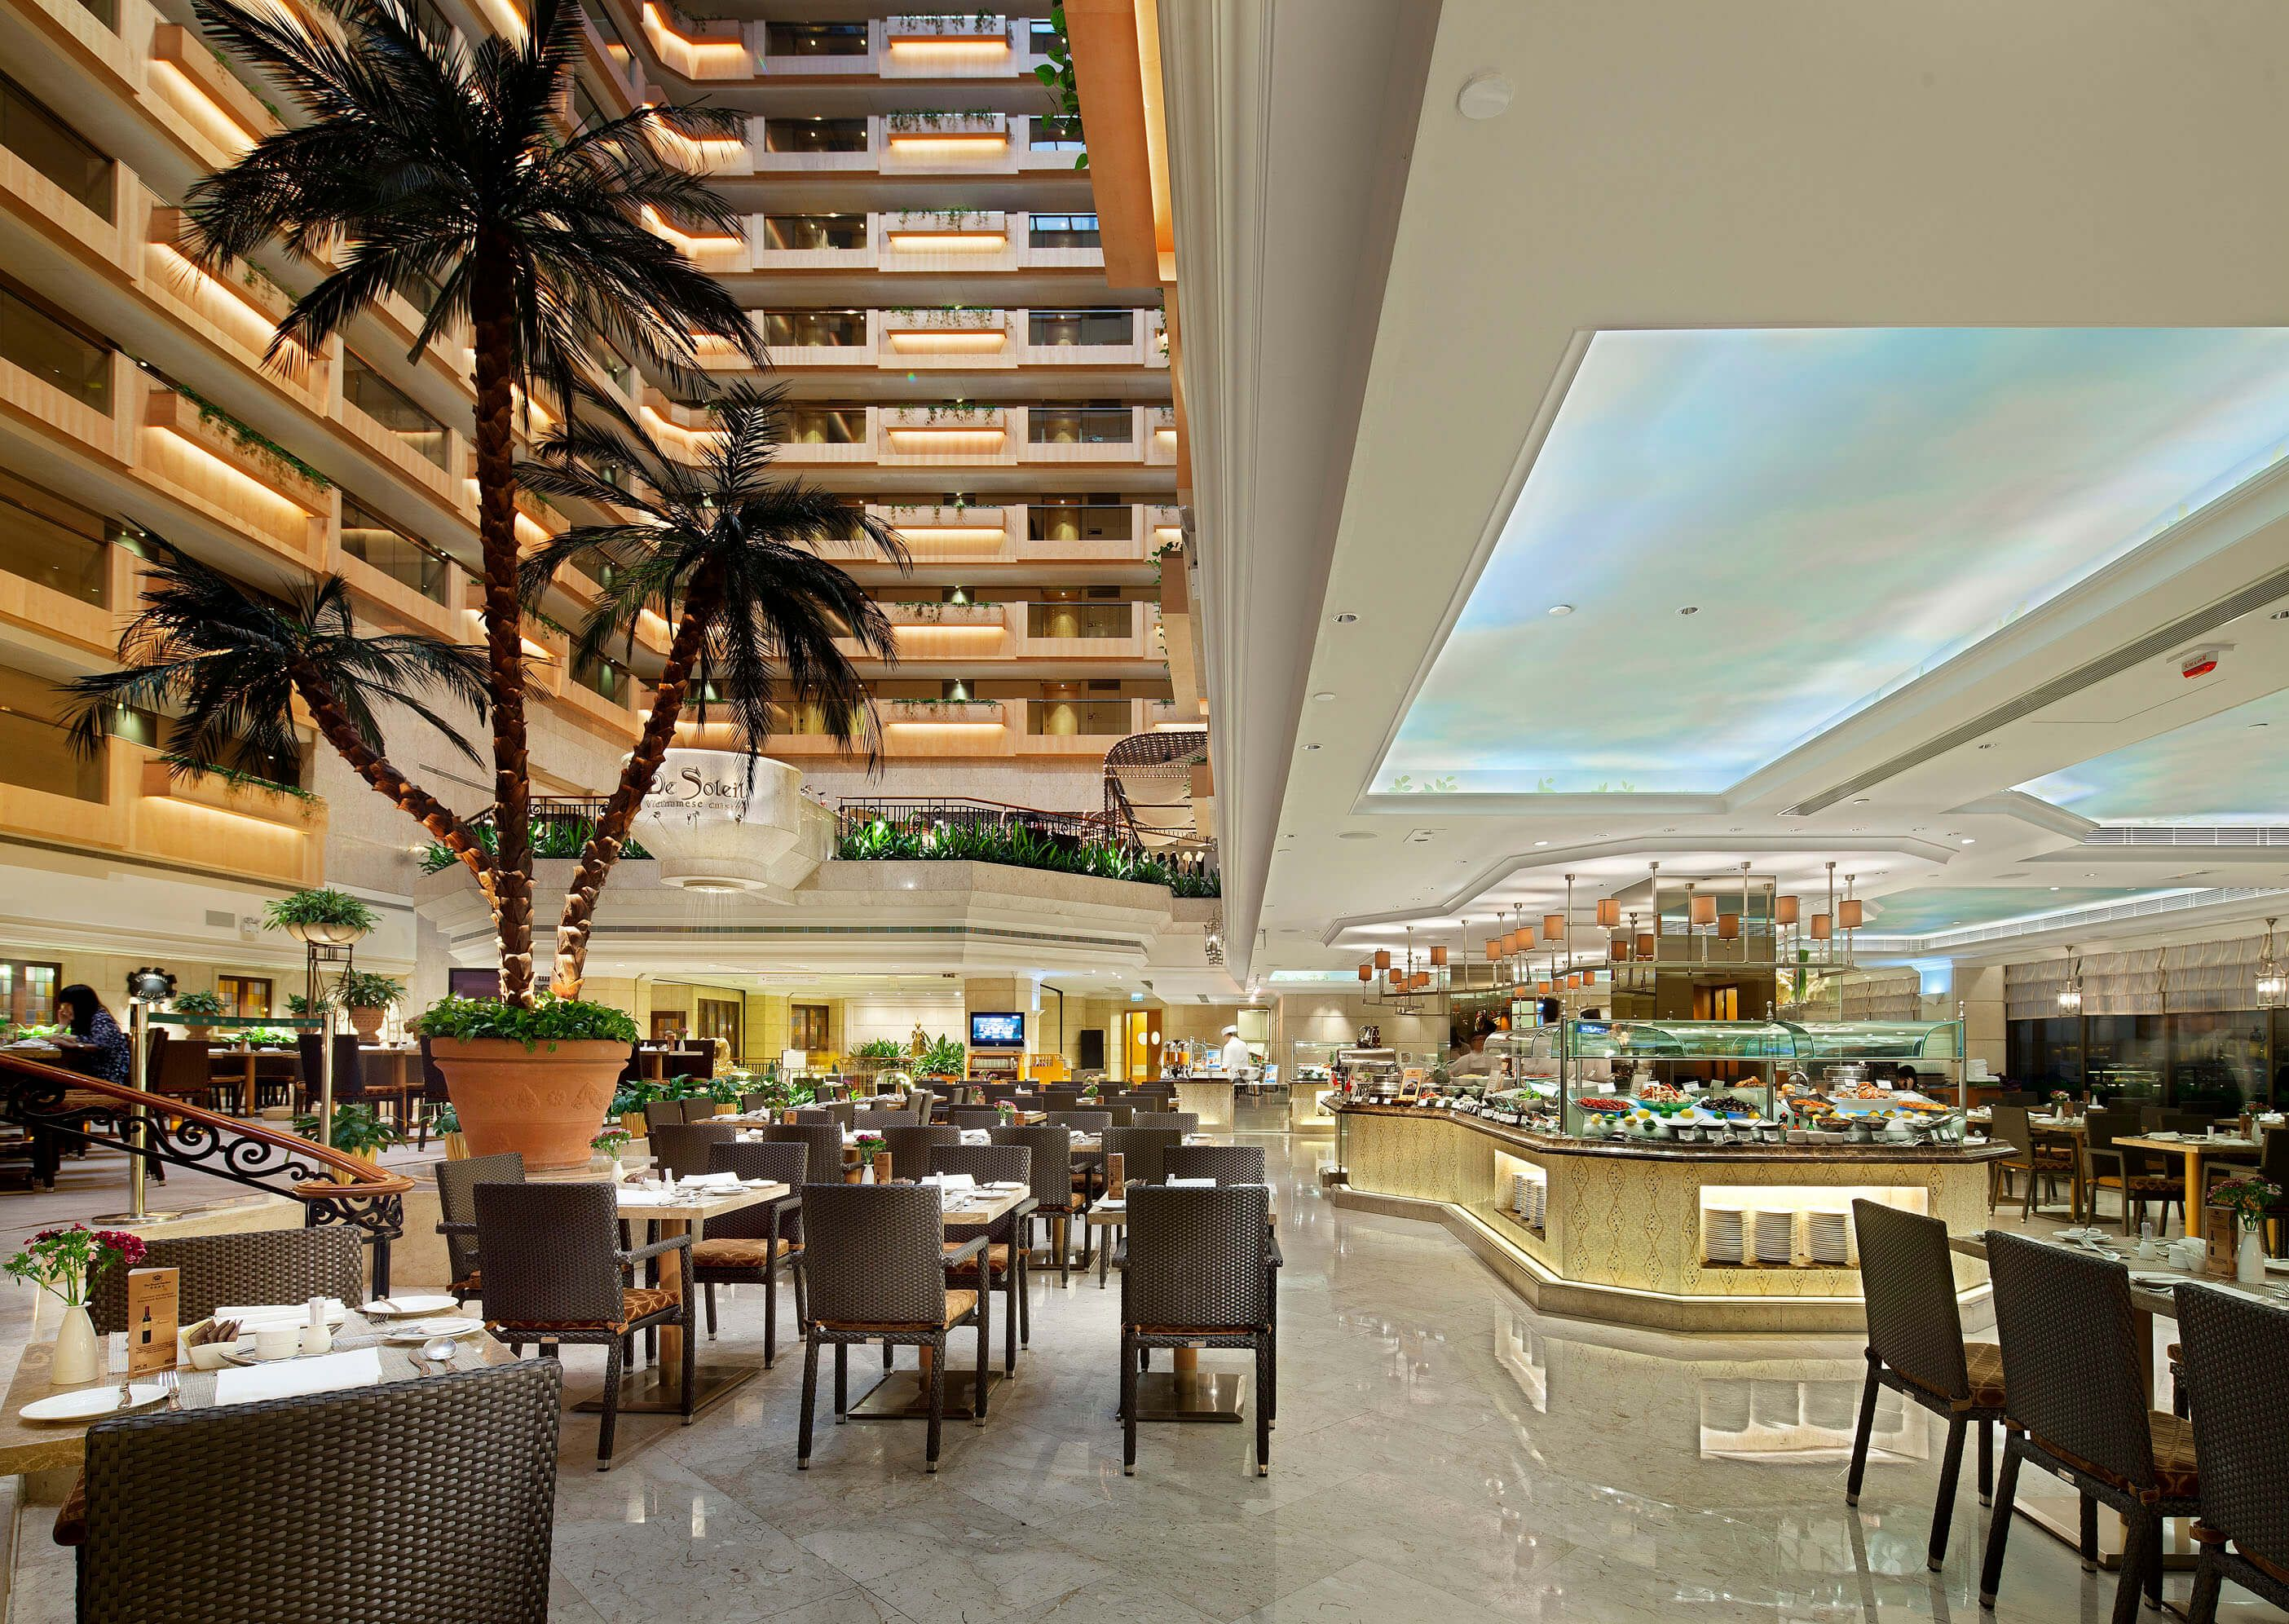 Awesome 5 Pics Royal Garden Hotel Hong Kong Lunch Buffet And Description Hotel Architecture Hotel Suite Design Hotel Room Design